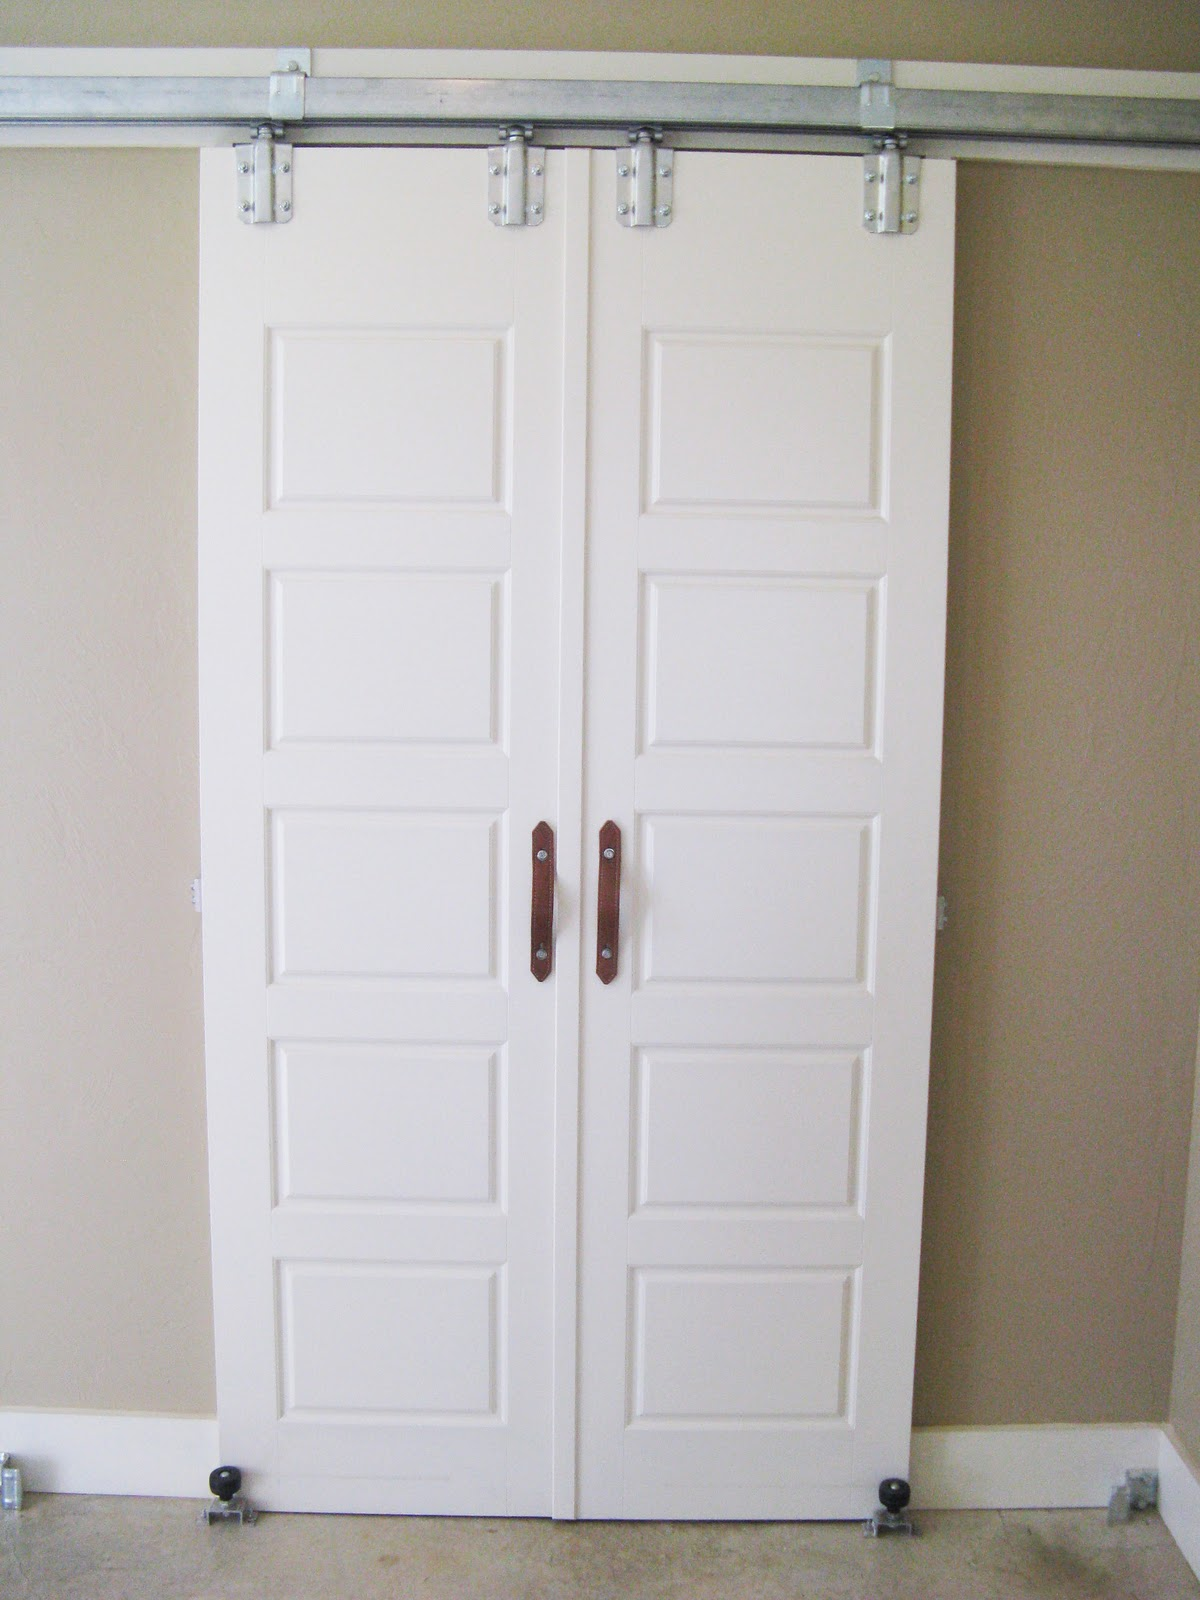 10 barn door designs for any style home page 10 of 11 - Barn door patterns ...